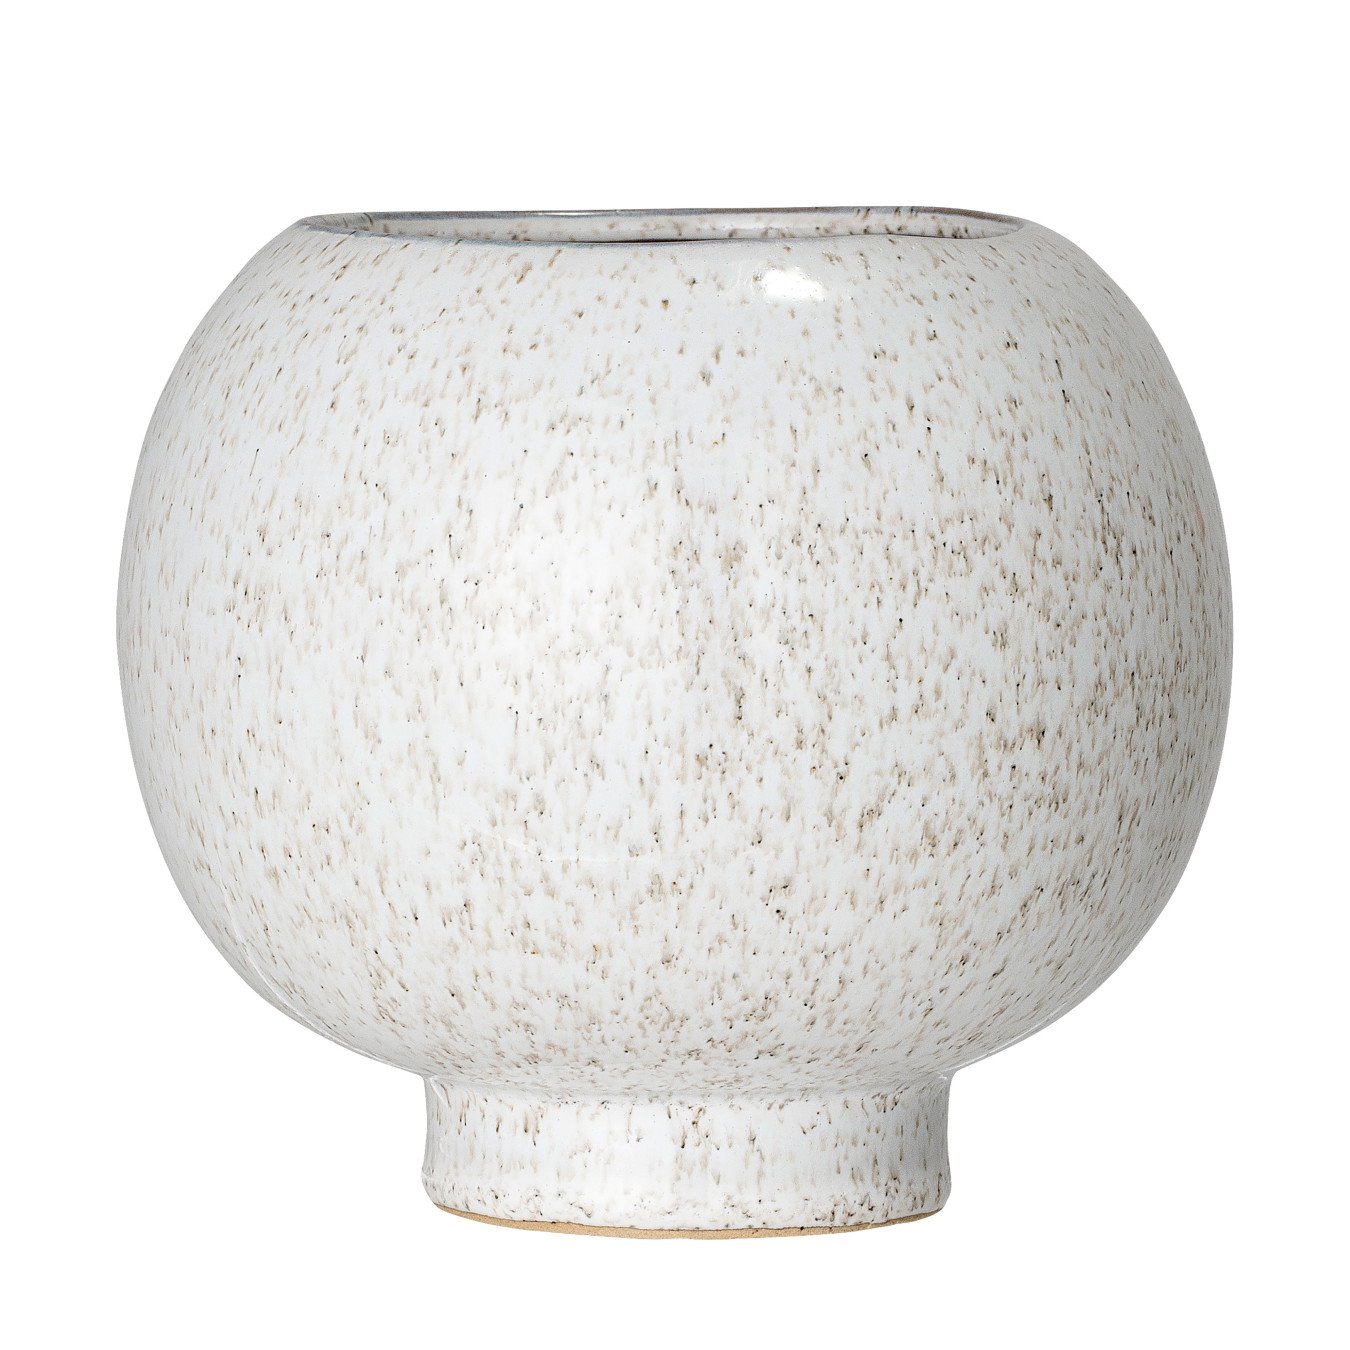 Ball Shaped White Speckled Stoneware Flower Pot